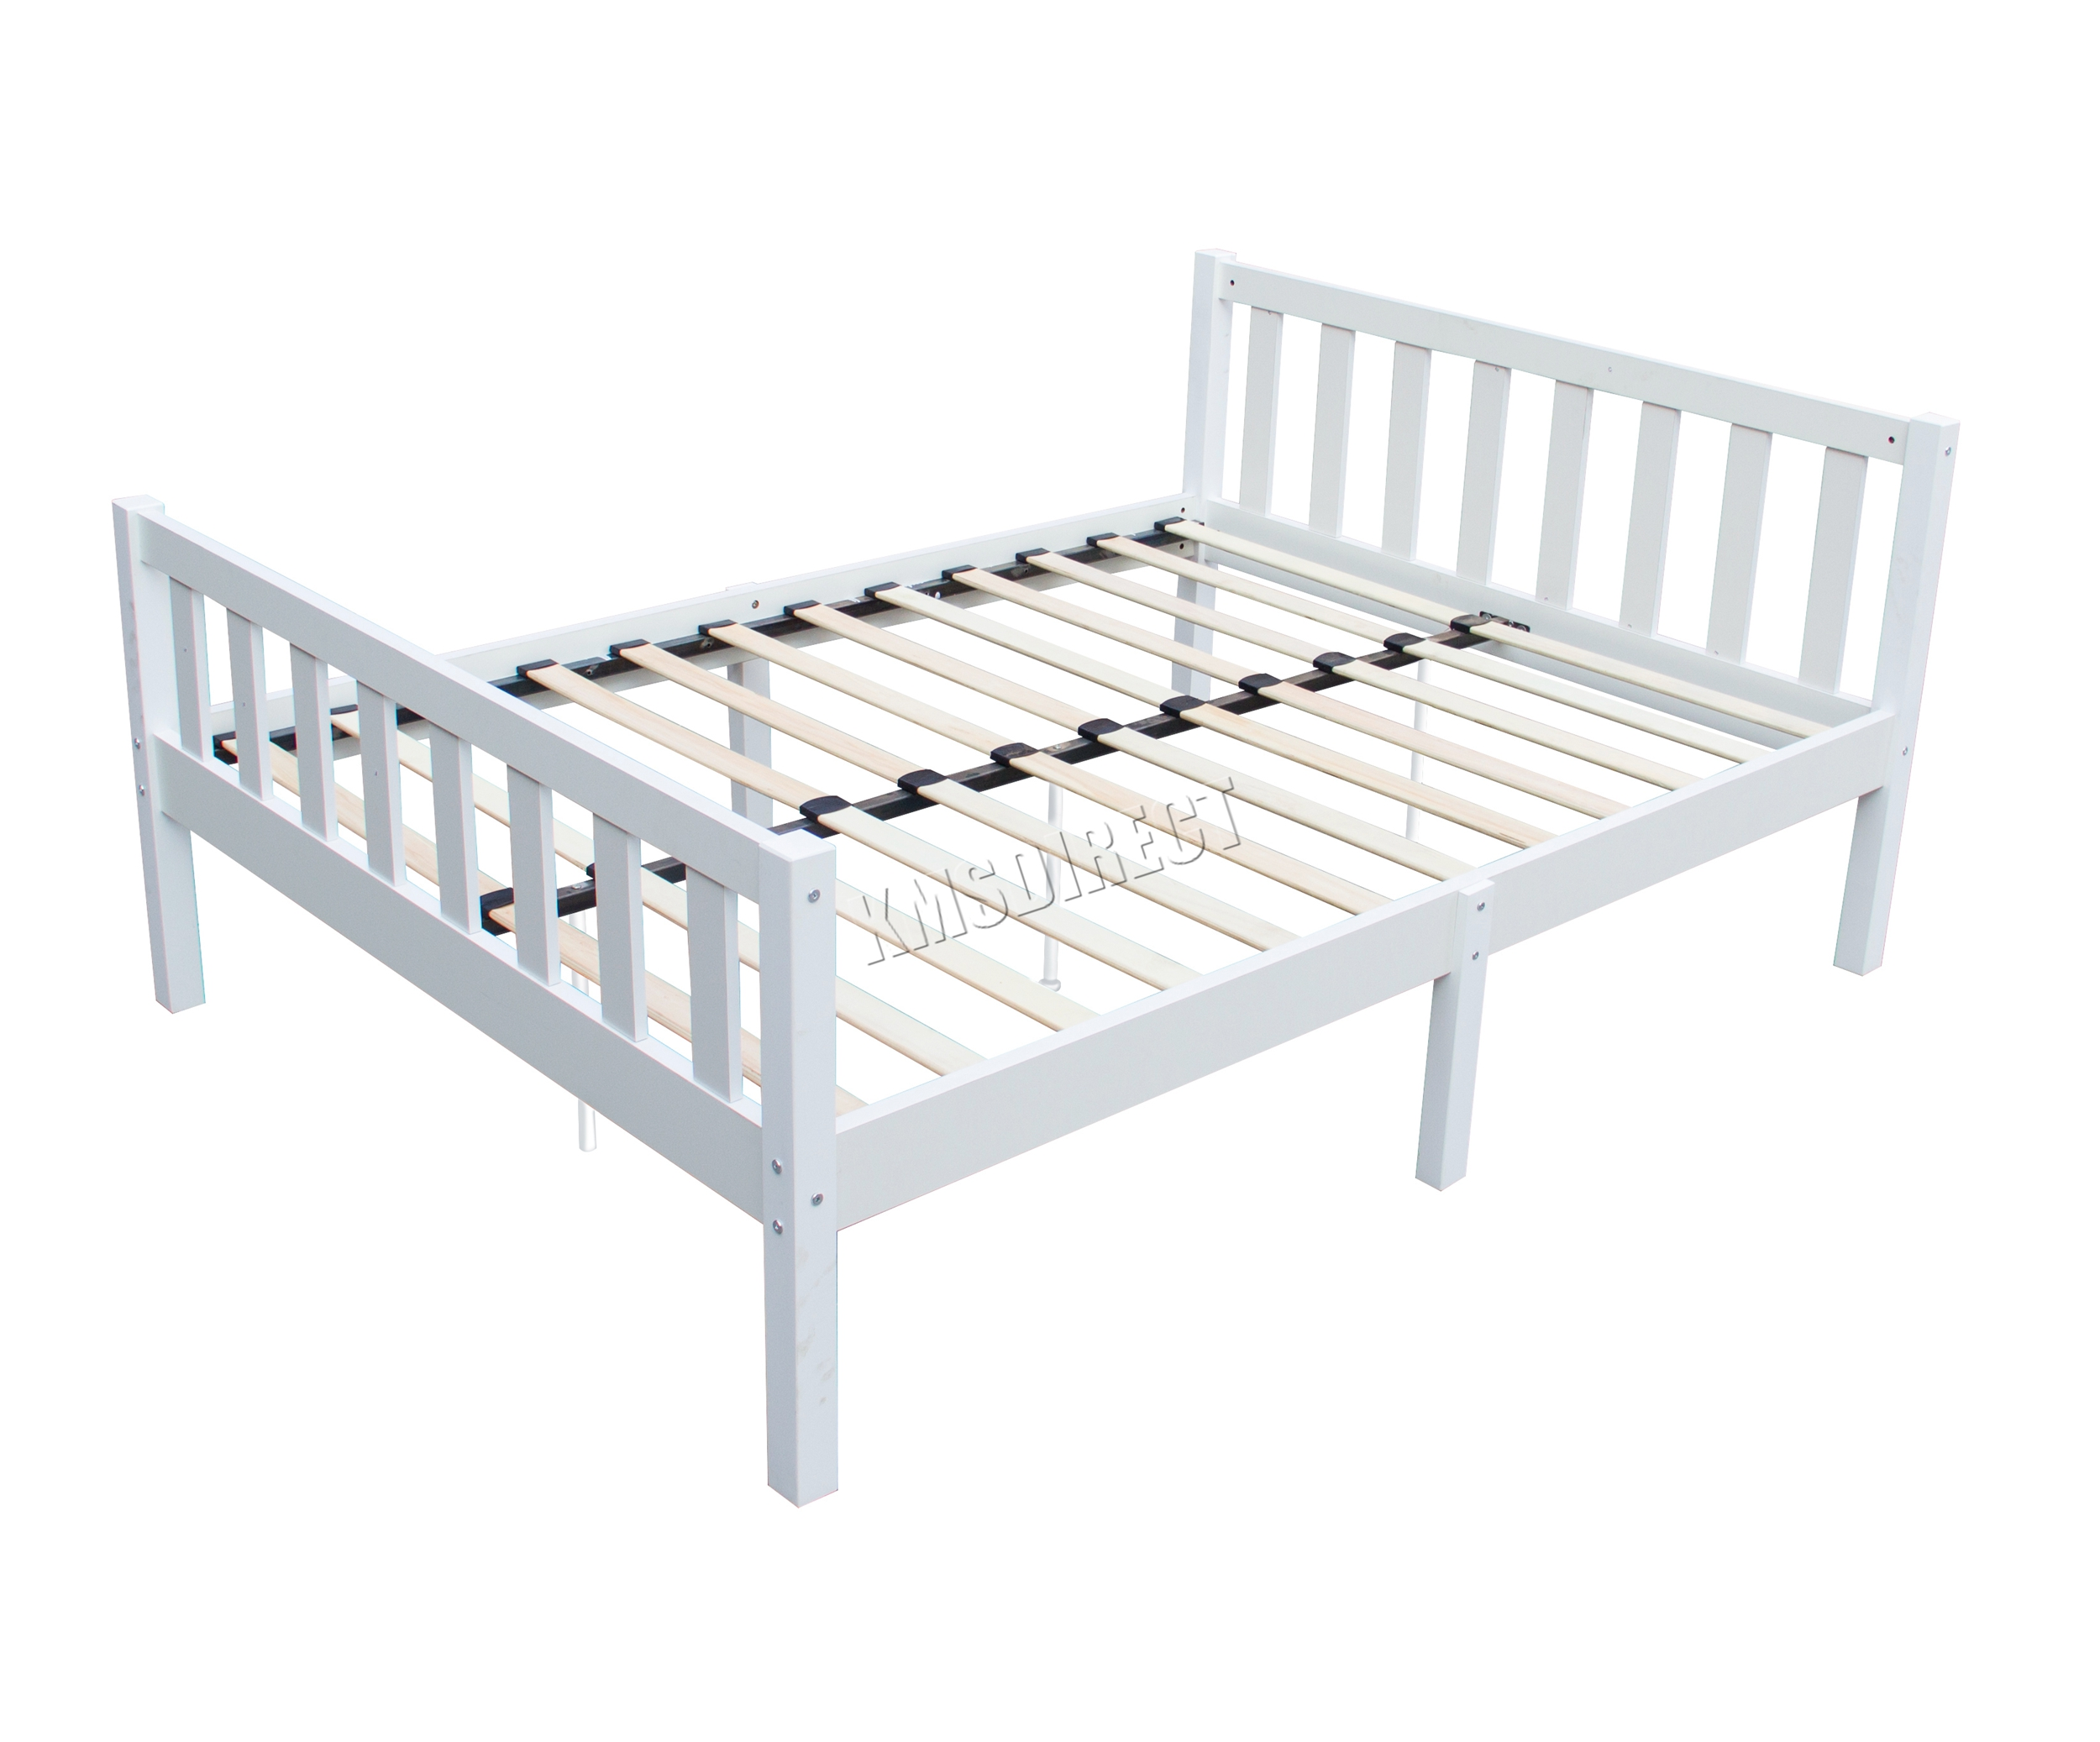 Westwood 4ft6 Double Wooden Bed Frame Pine Bedroom Home Furniture White Pwb02 Ebay